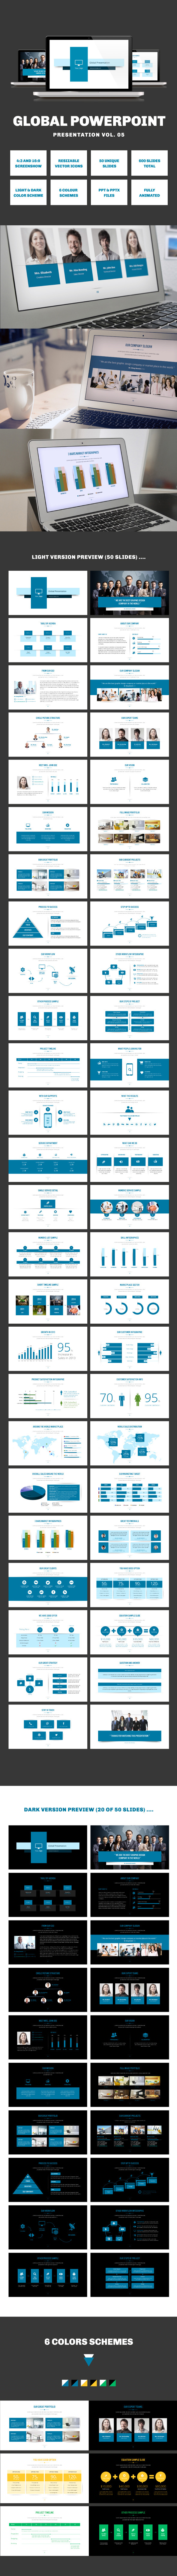 Multipurpose PowerPoint Presentation (Vol. 05) - PowerPoint Templates Presentation Templates